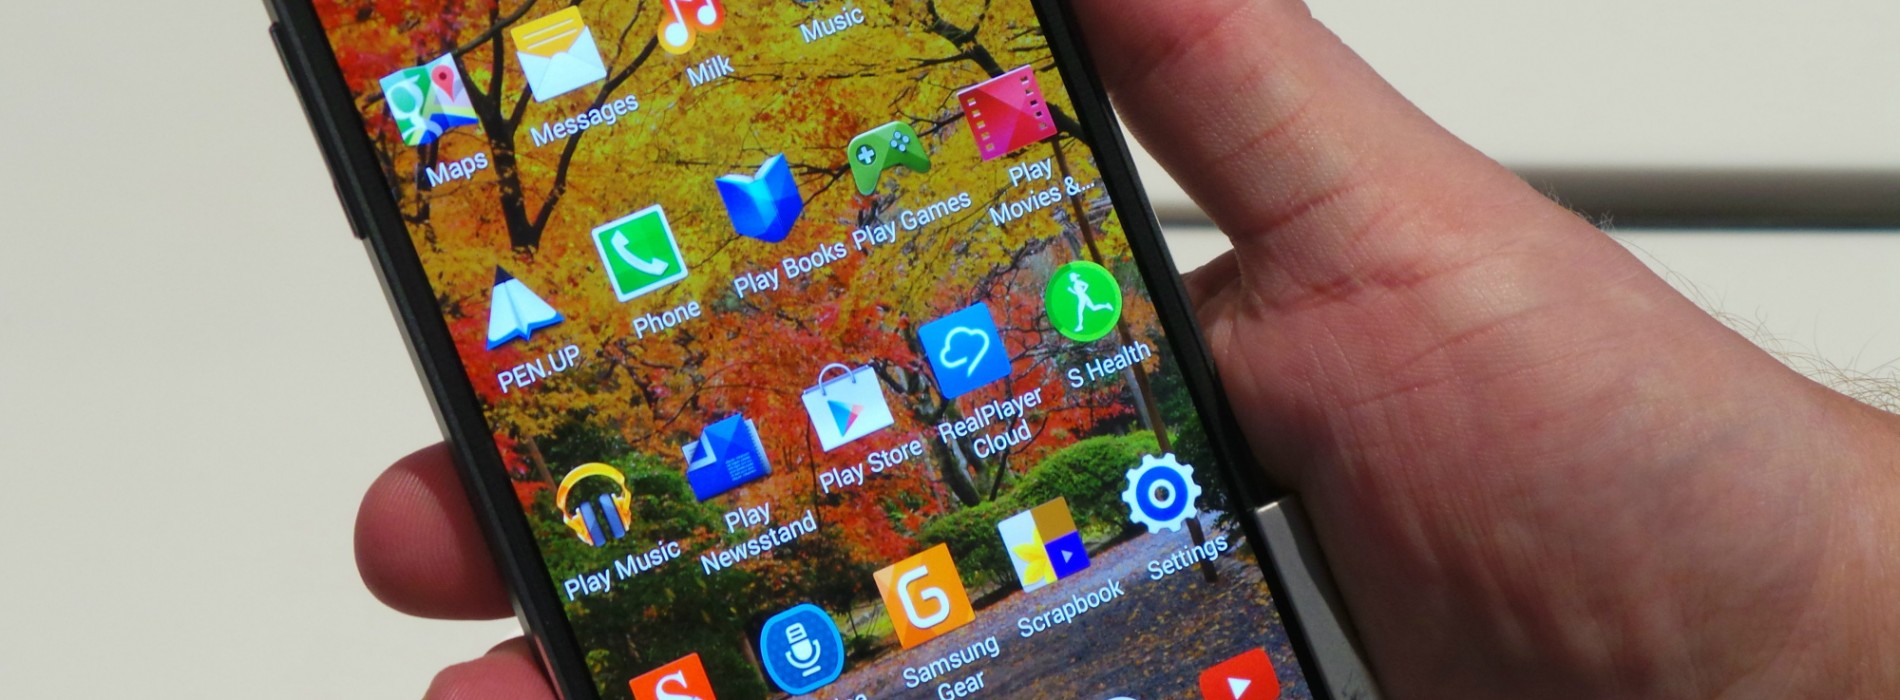 U.S. Cellular promises Galaxy Note 4 in October